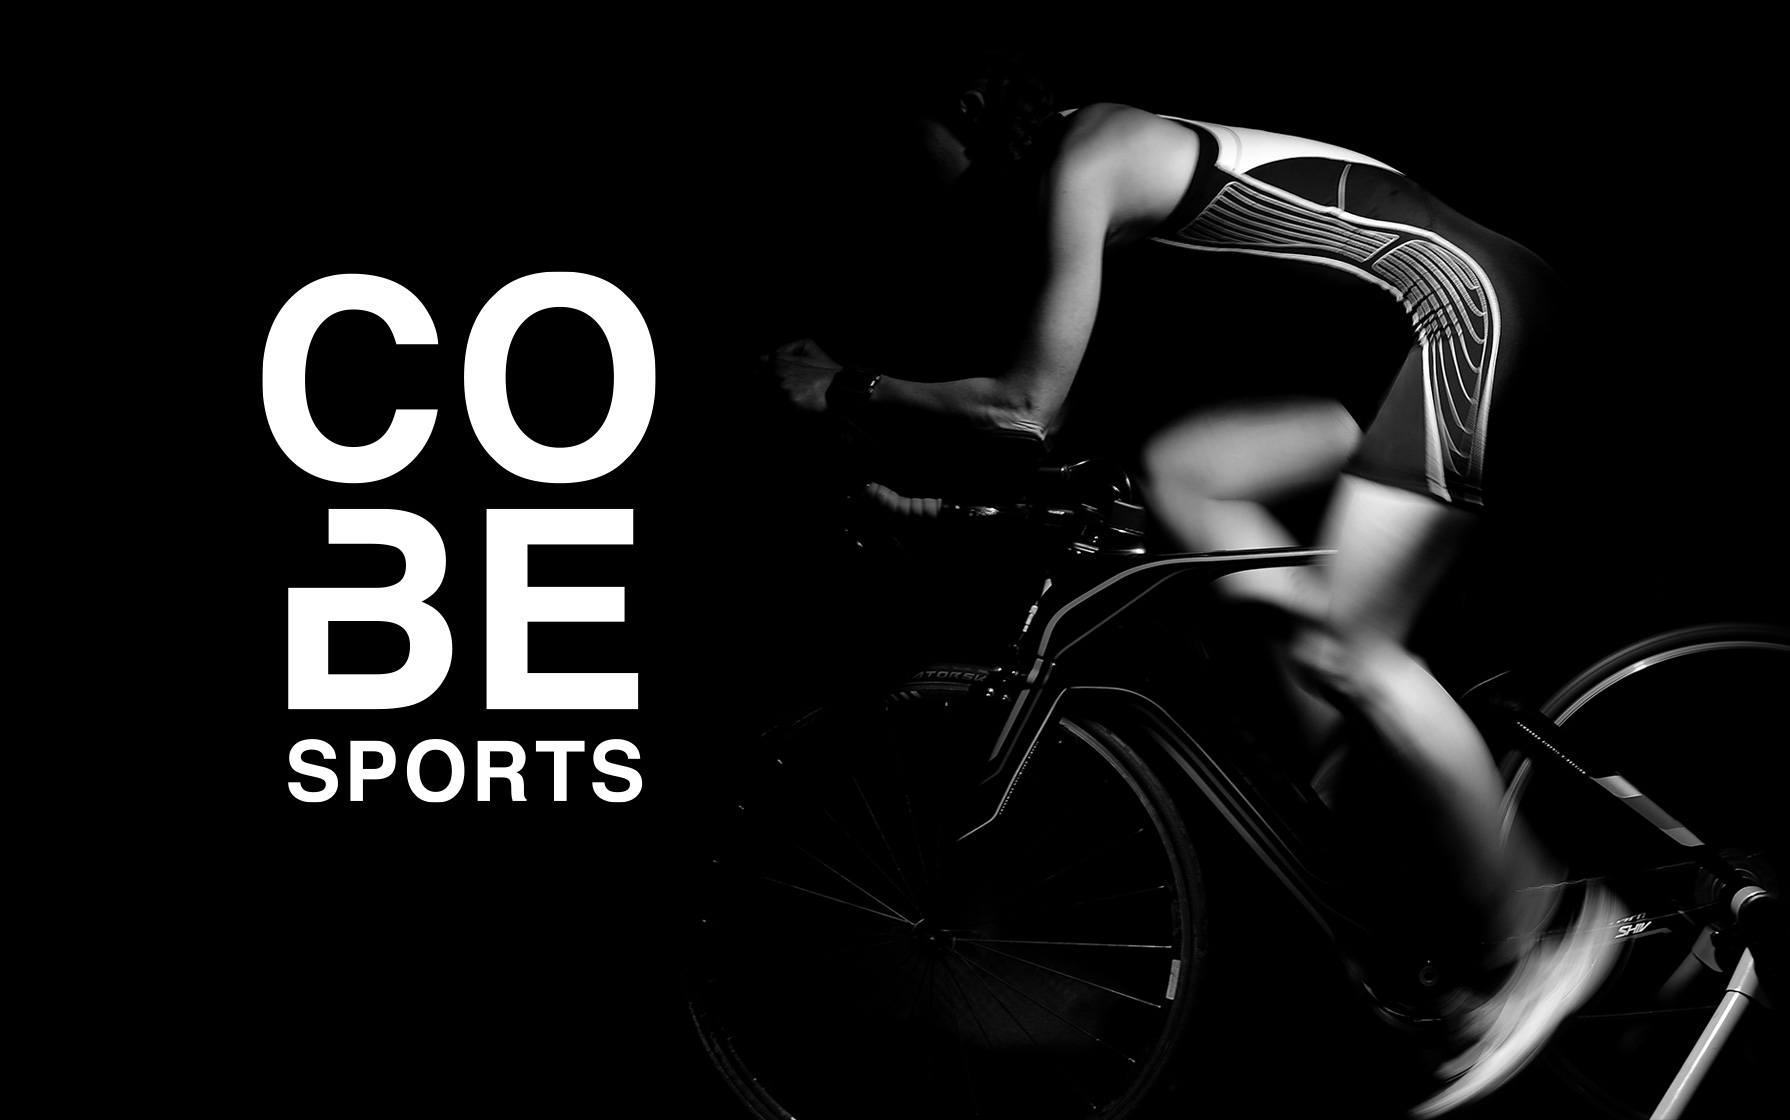 Branding for Cycling Clothing Company